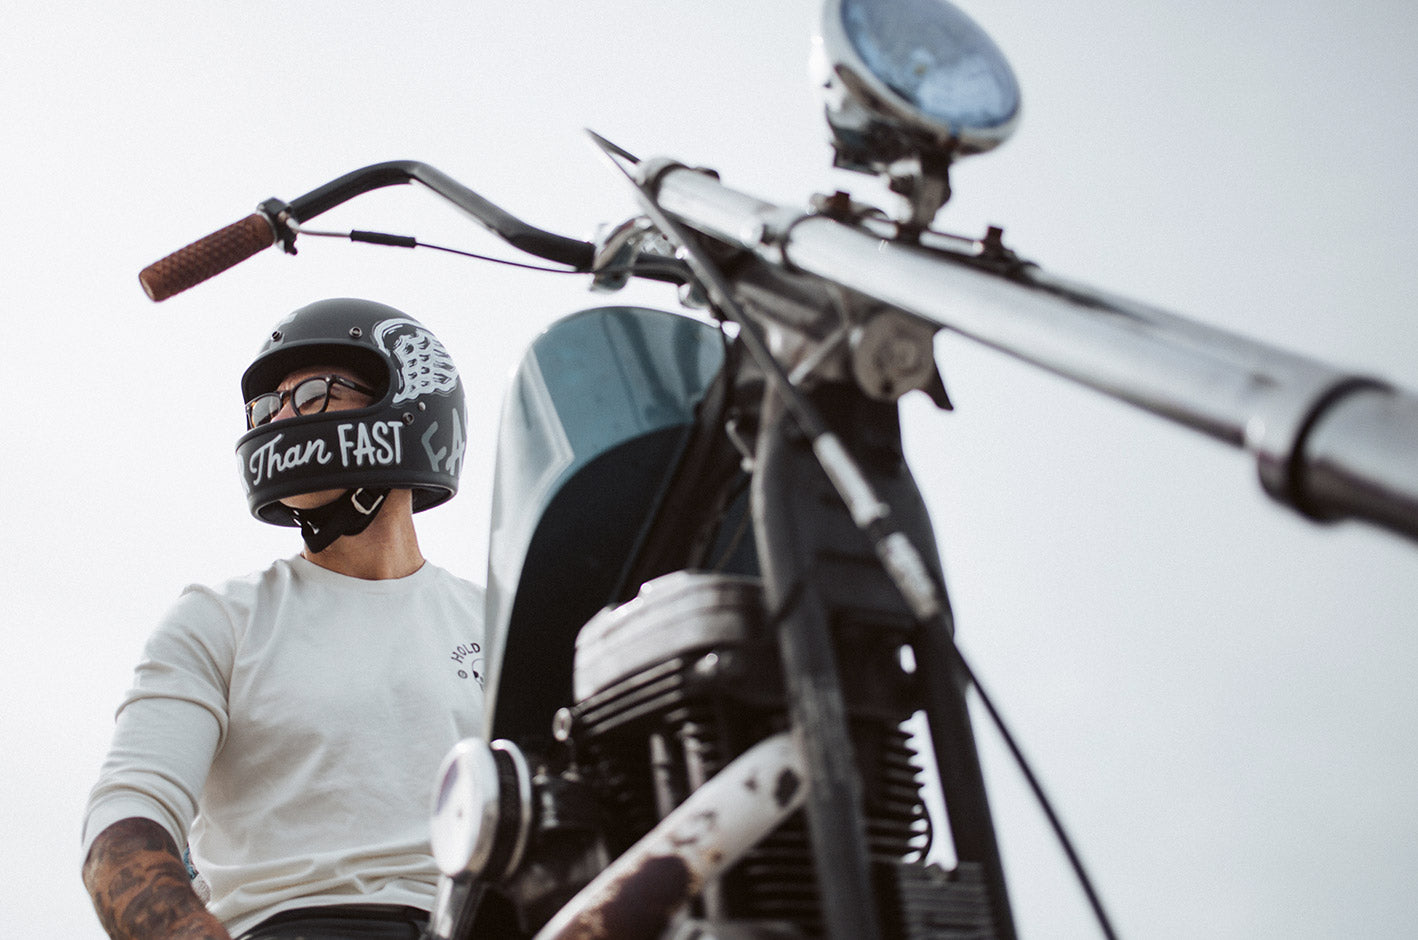 Win a Shitty helmets Graphical helmet